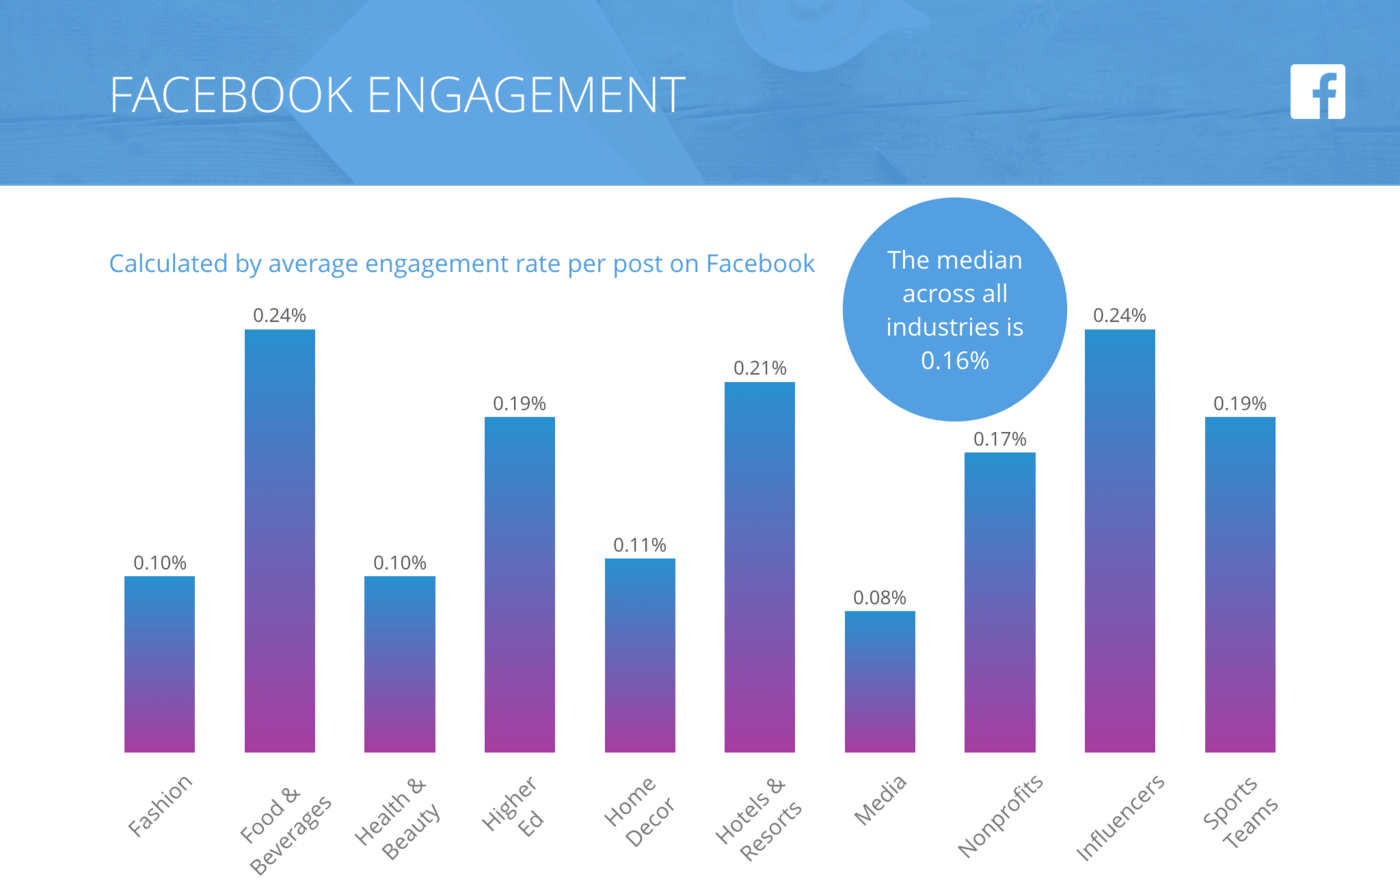 bar graph of Facebook Engagement across all industries in this study